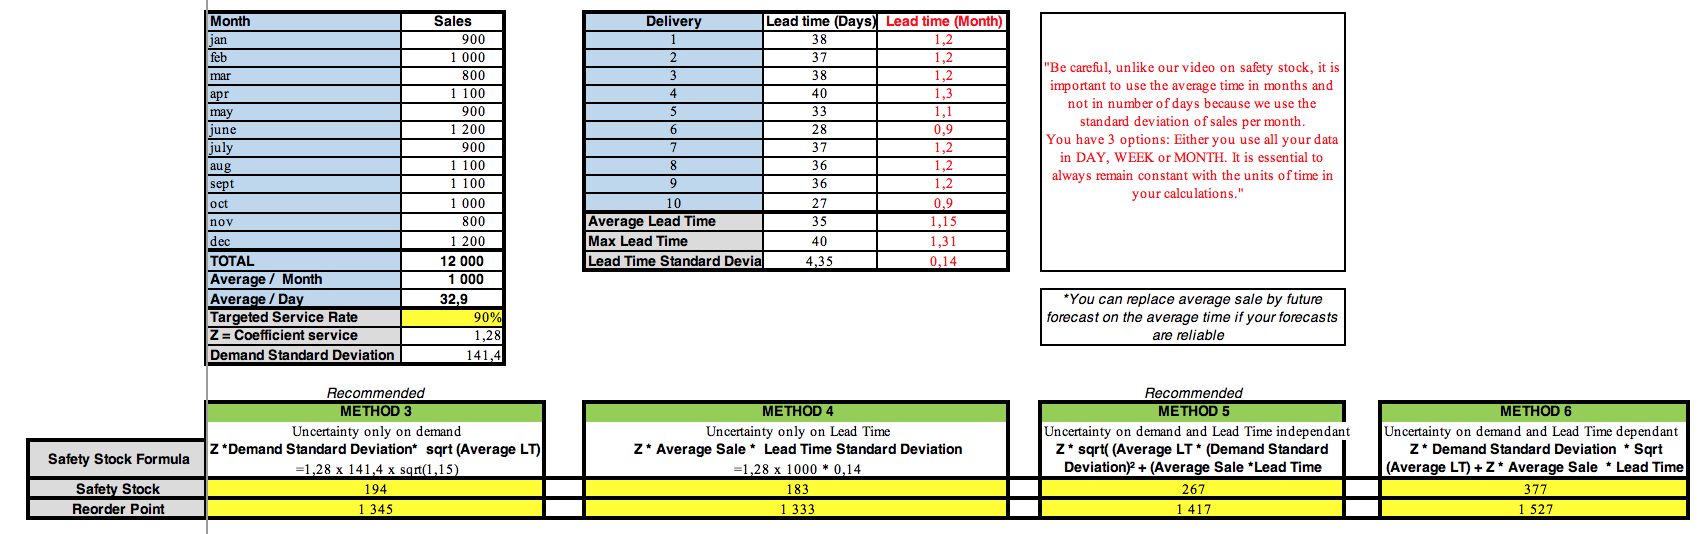 Safety Stock Calculation Method